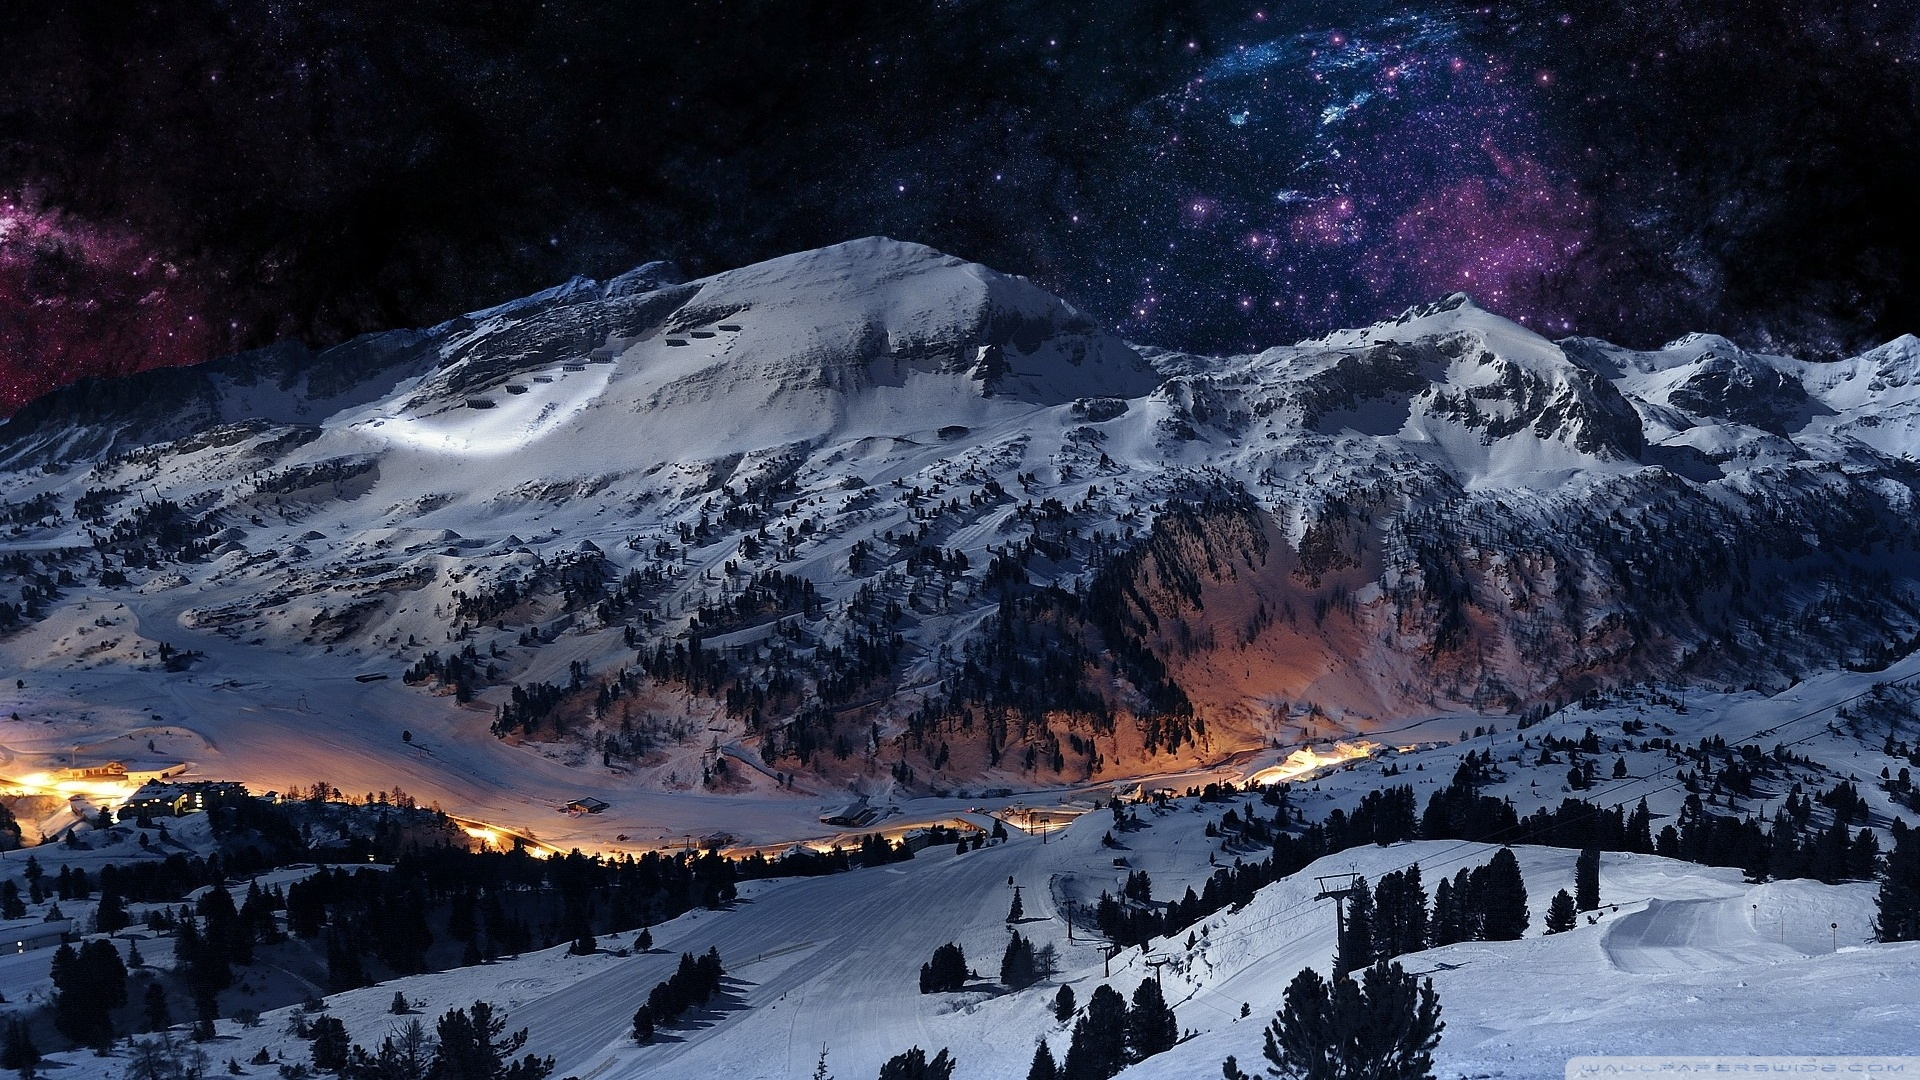 night_sky_snow-wallpaper-1920x1080